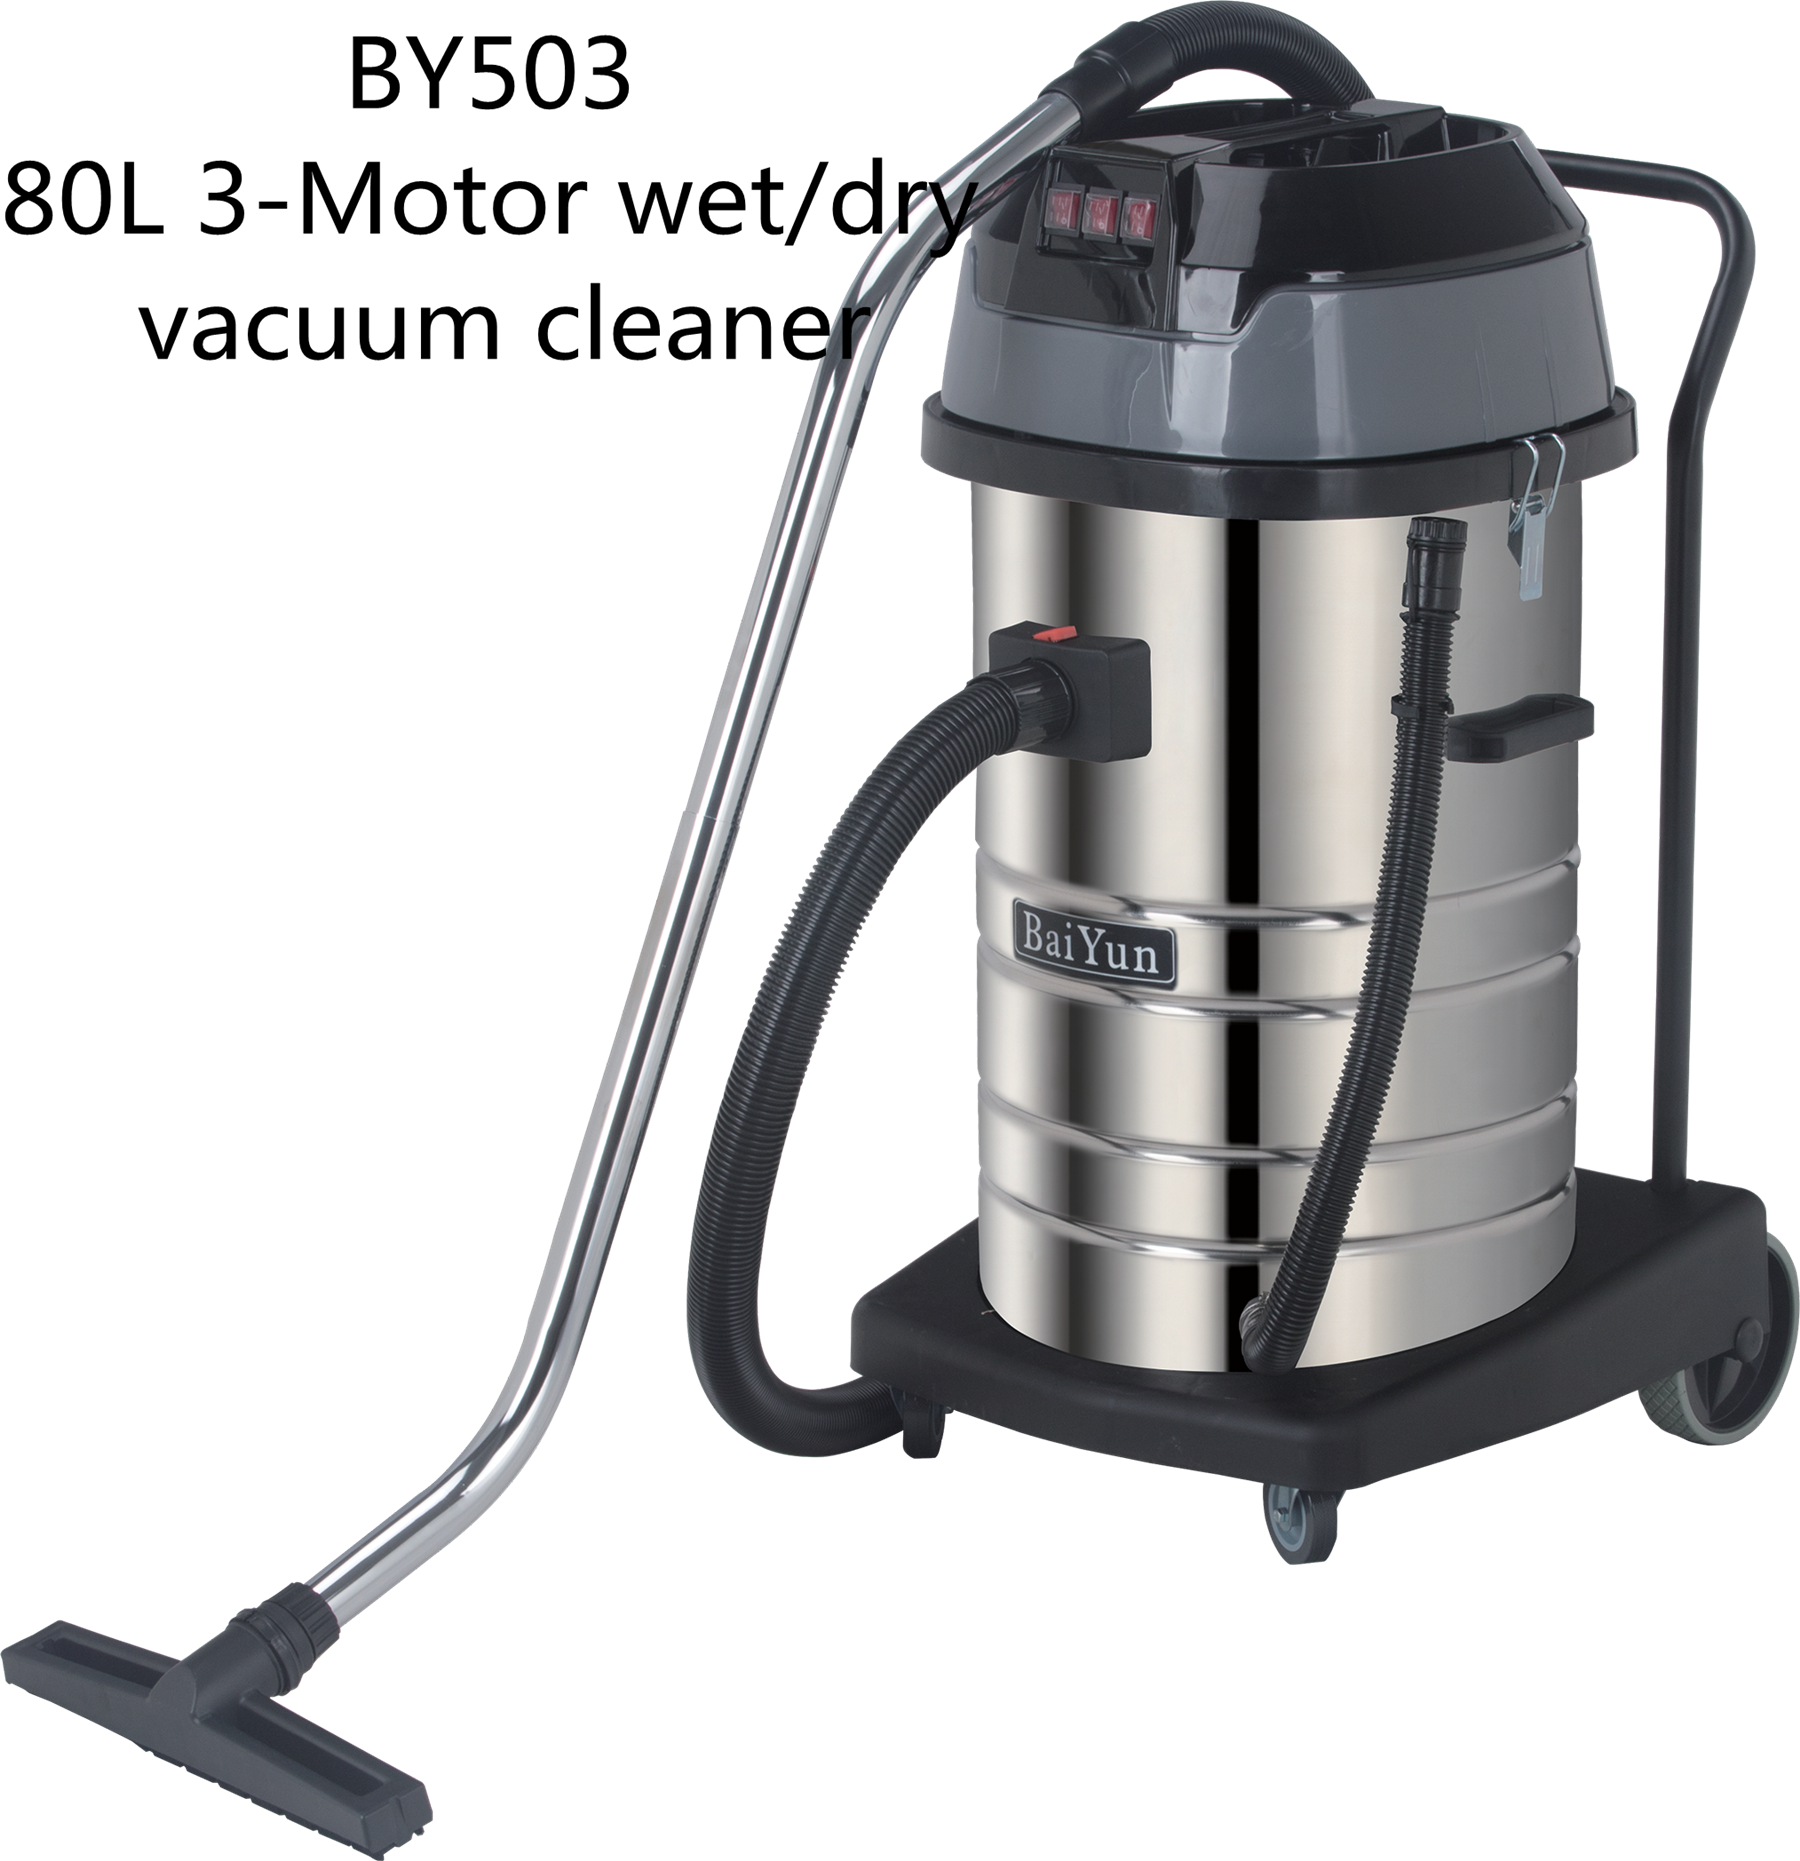 BAIYUN BY503 80L 3000w high quality portable powerful motor stainless steel tank vacuum cleaner Dry and wet Business Hotel